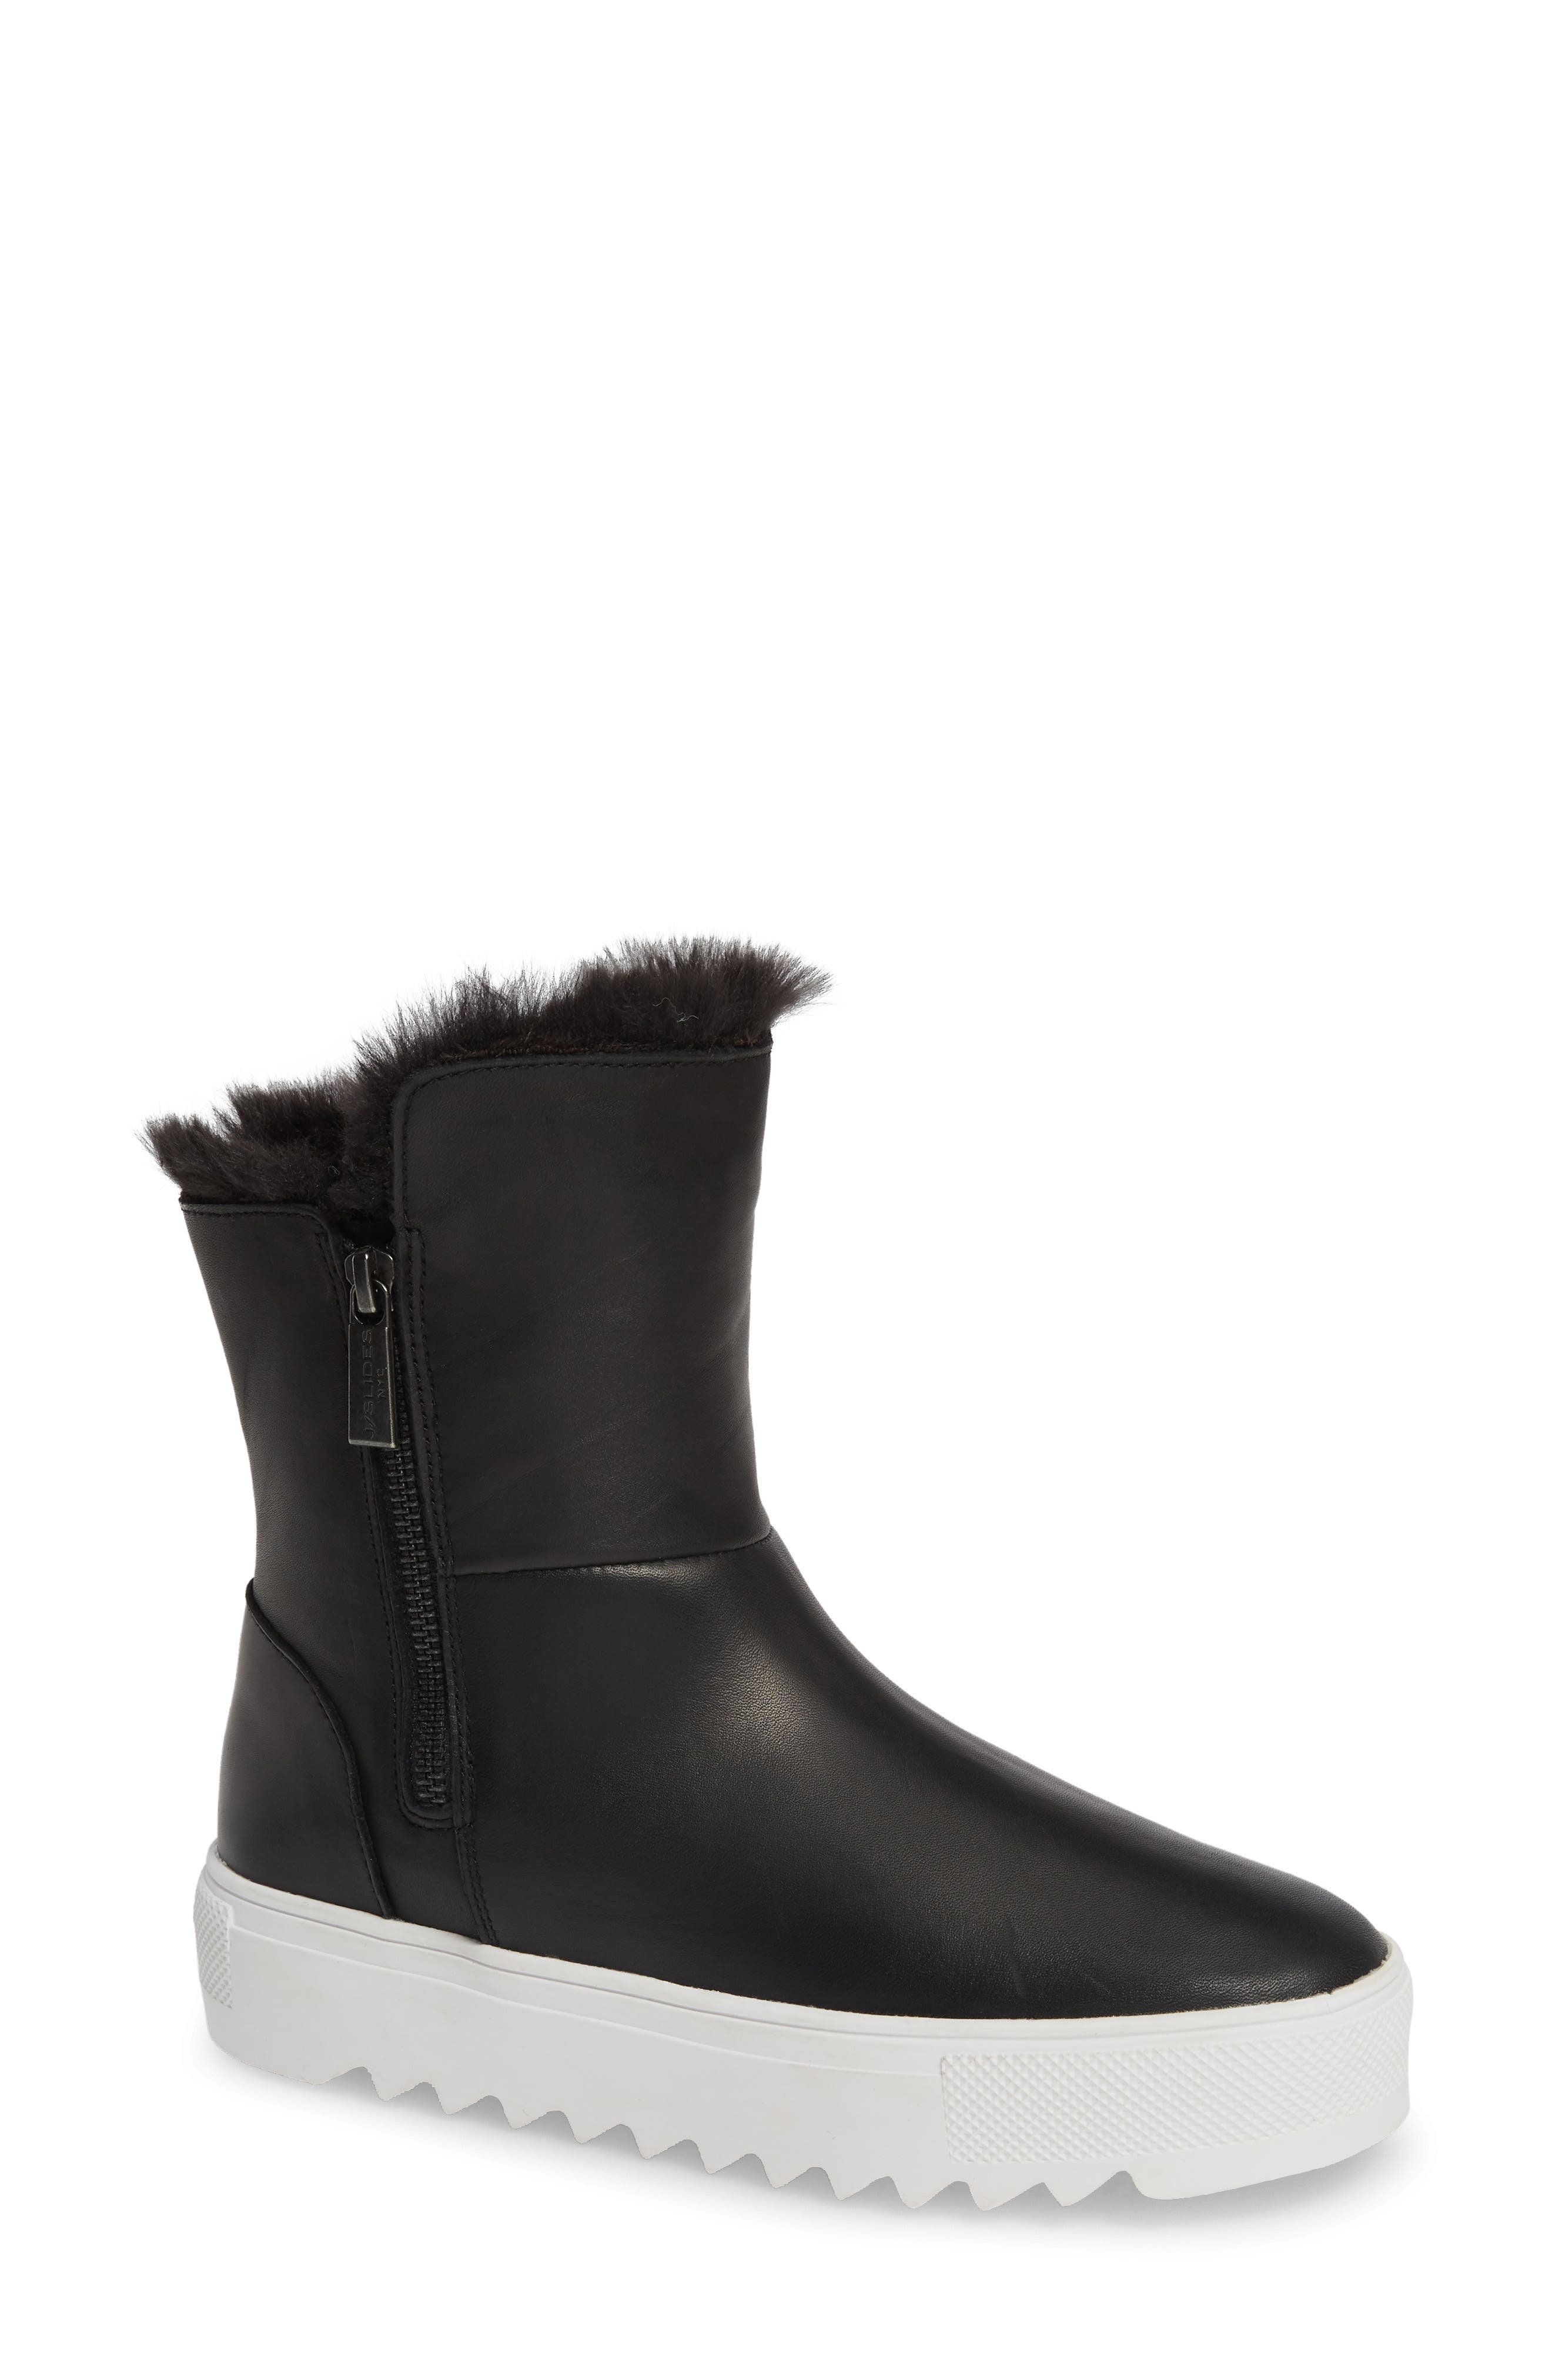 Jslides Selene Faux Fur Lined Waterproof Boot, Black